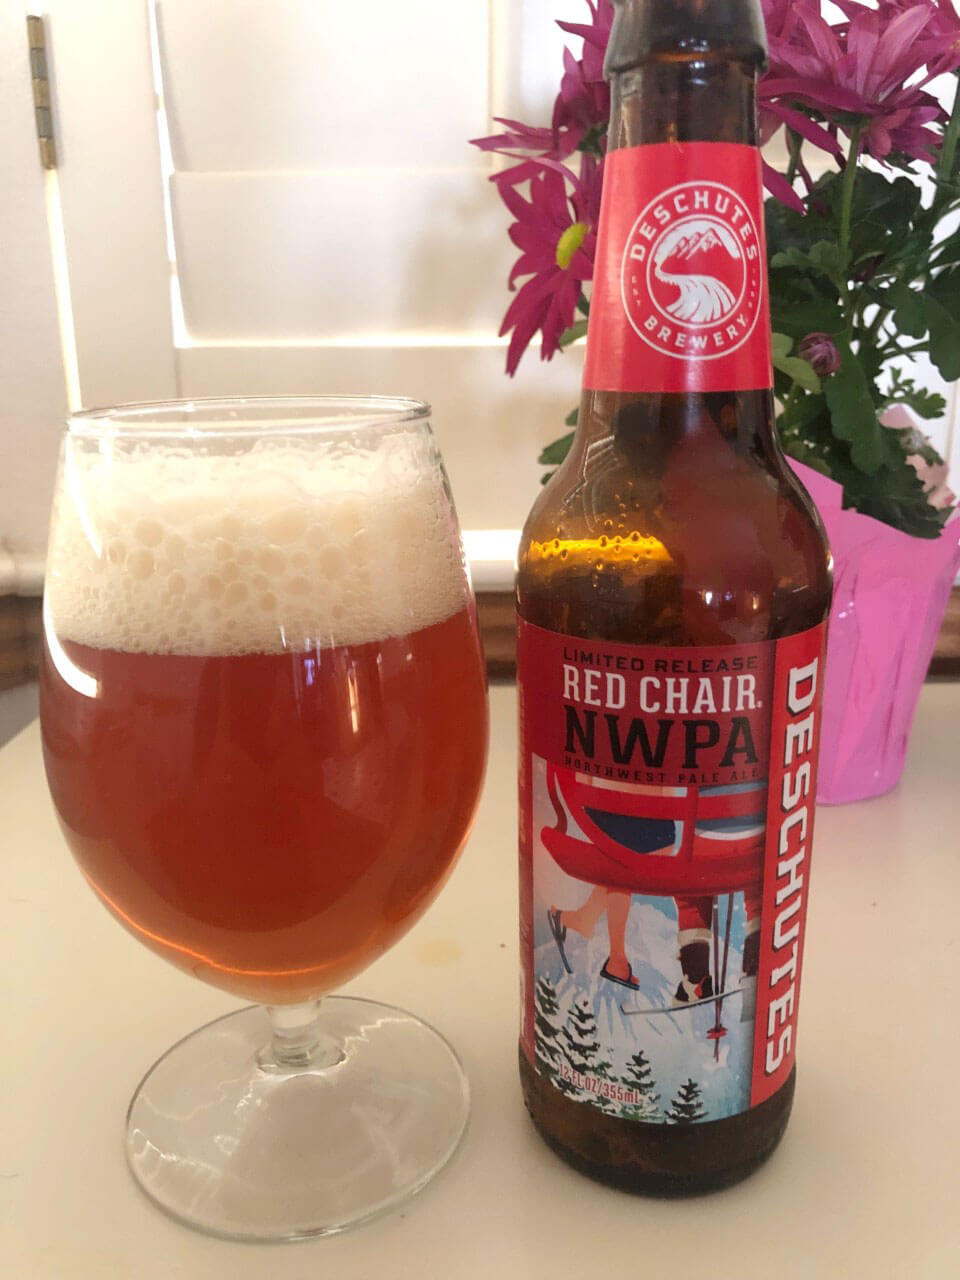 Deschutes Brewery Red Chair Northwest Pale Ale, glass and bottle